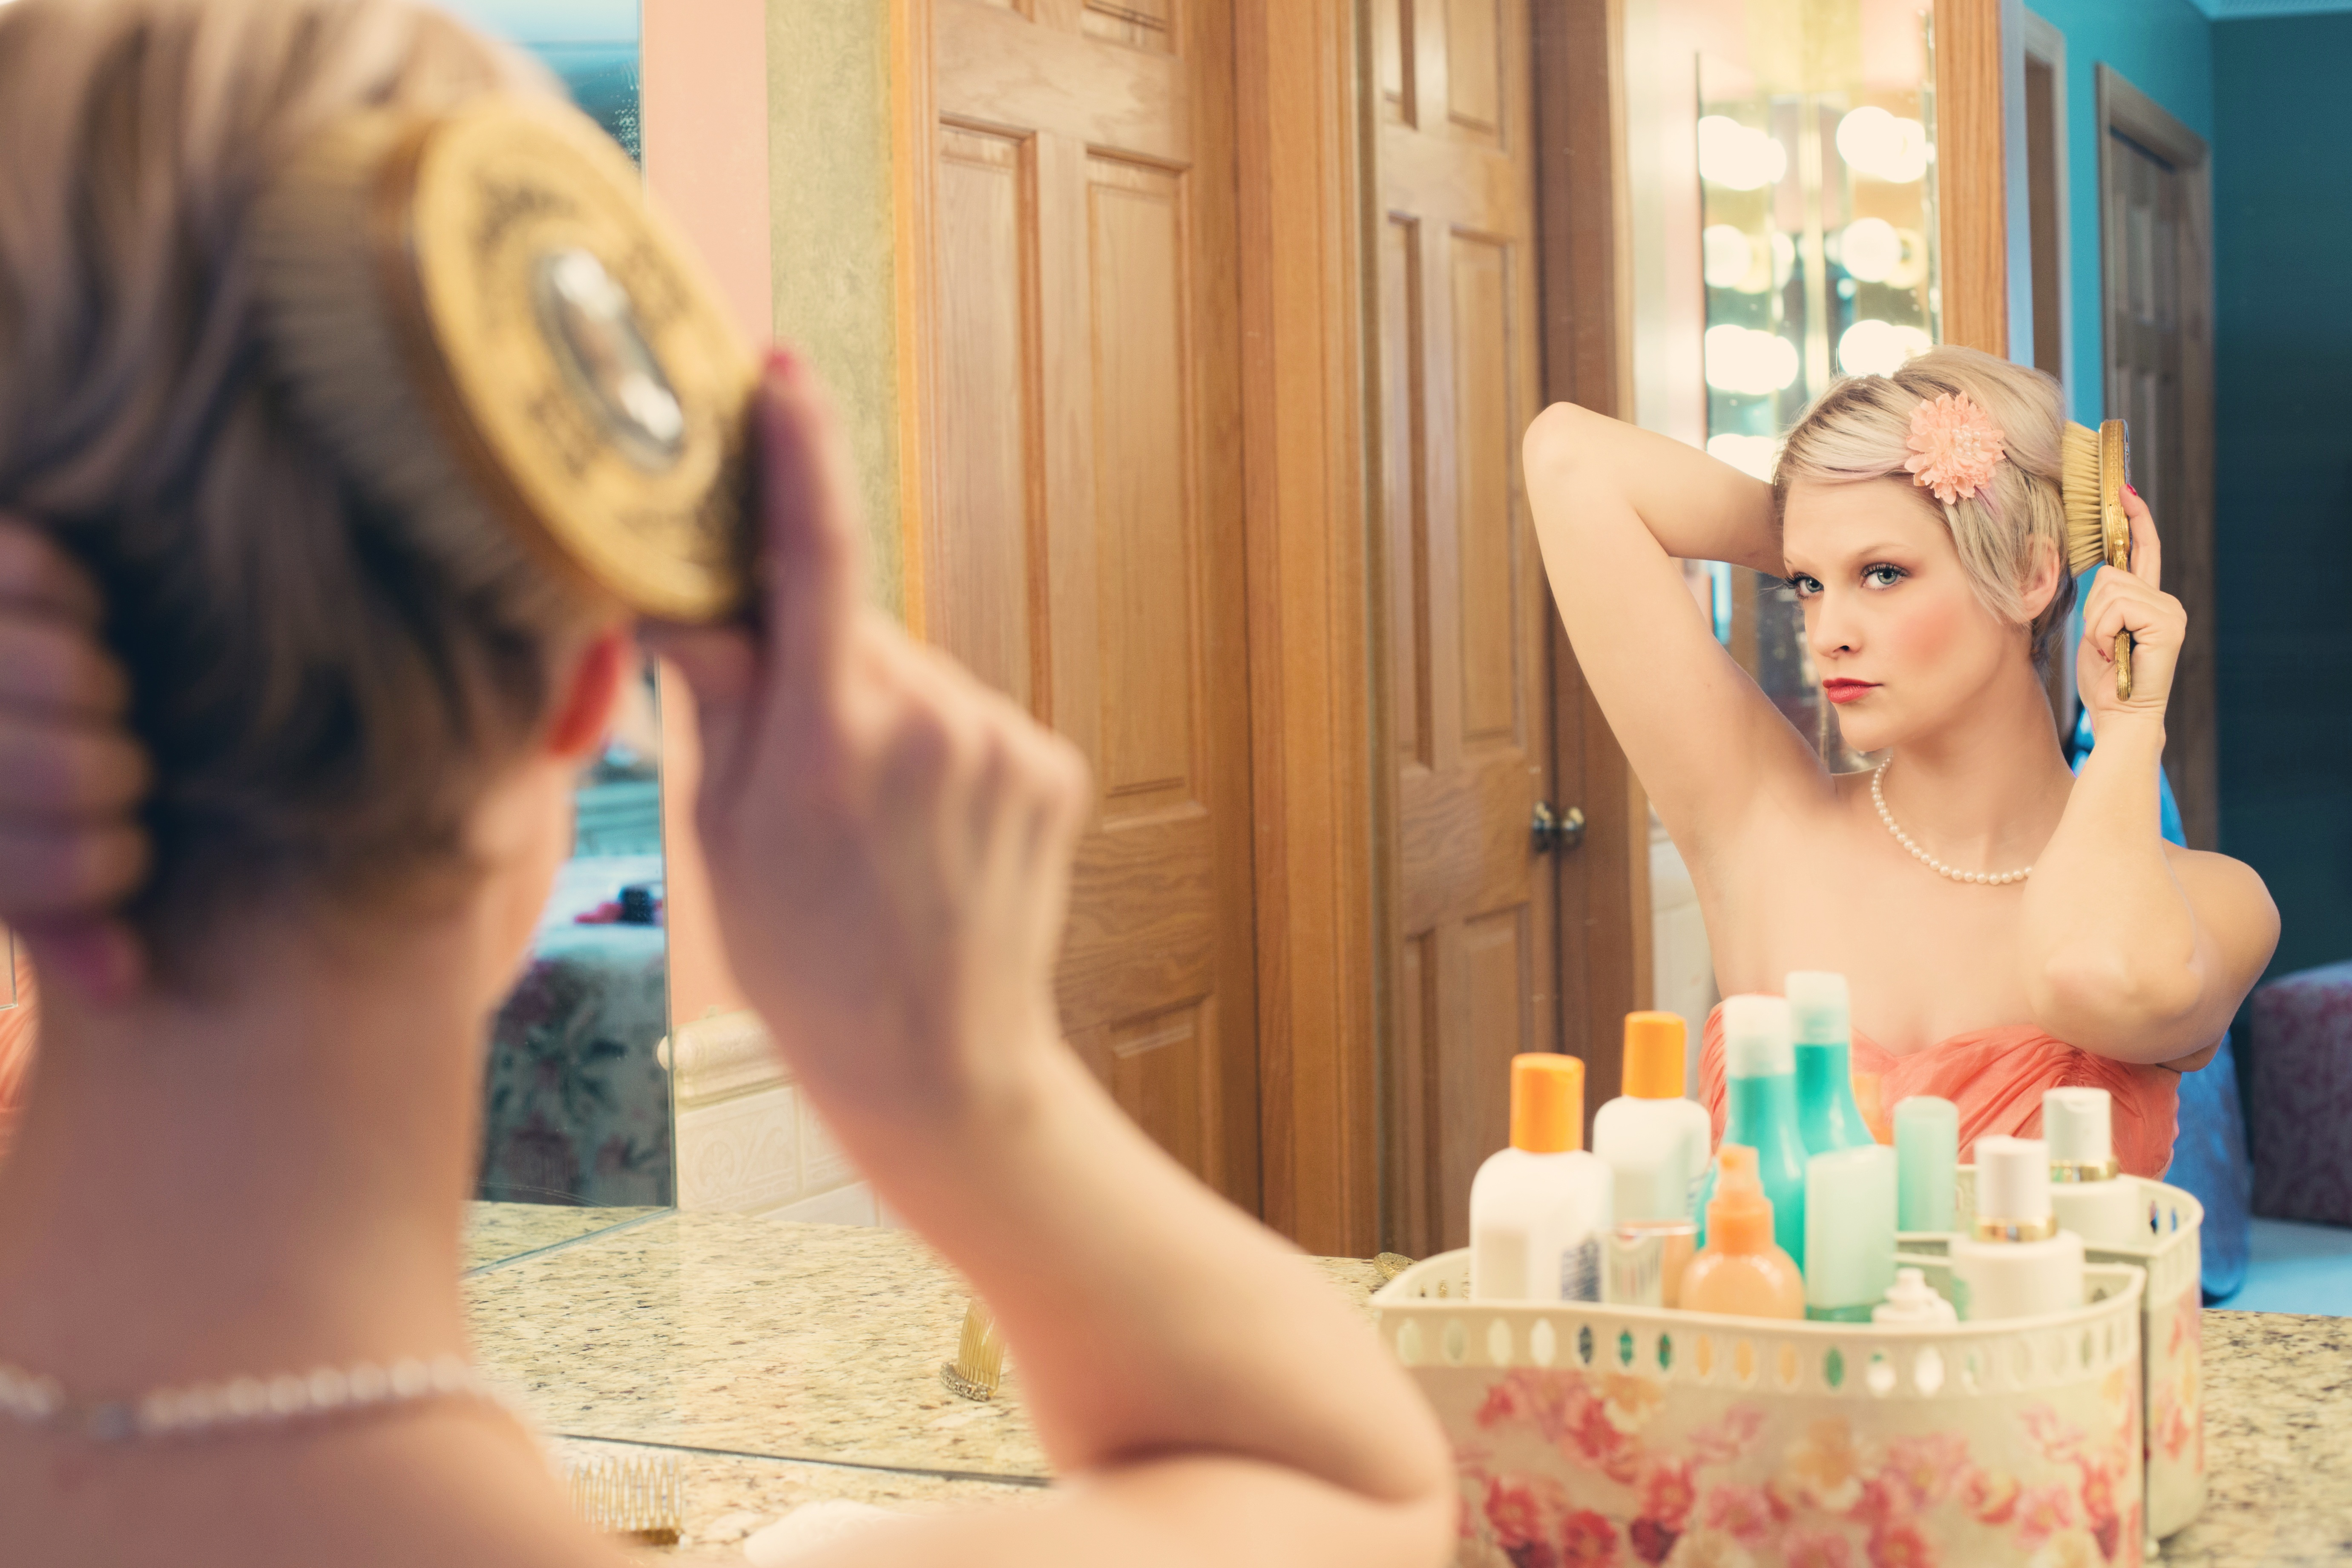 pretty-woman-makeup-mirror-glamour-39250_1.jpeg